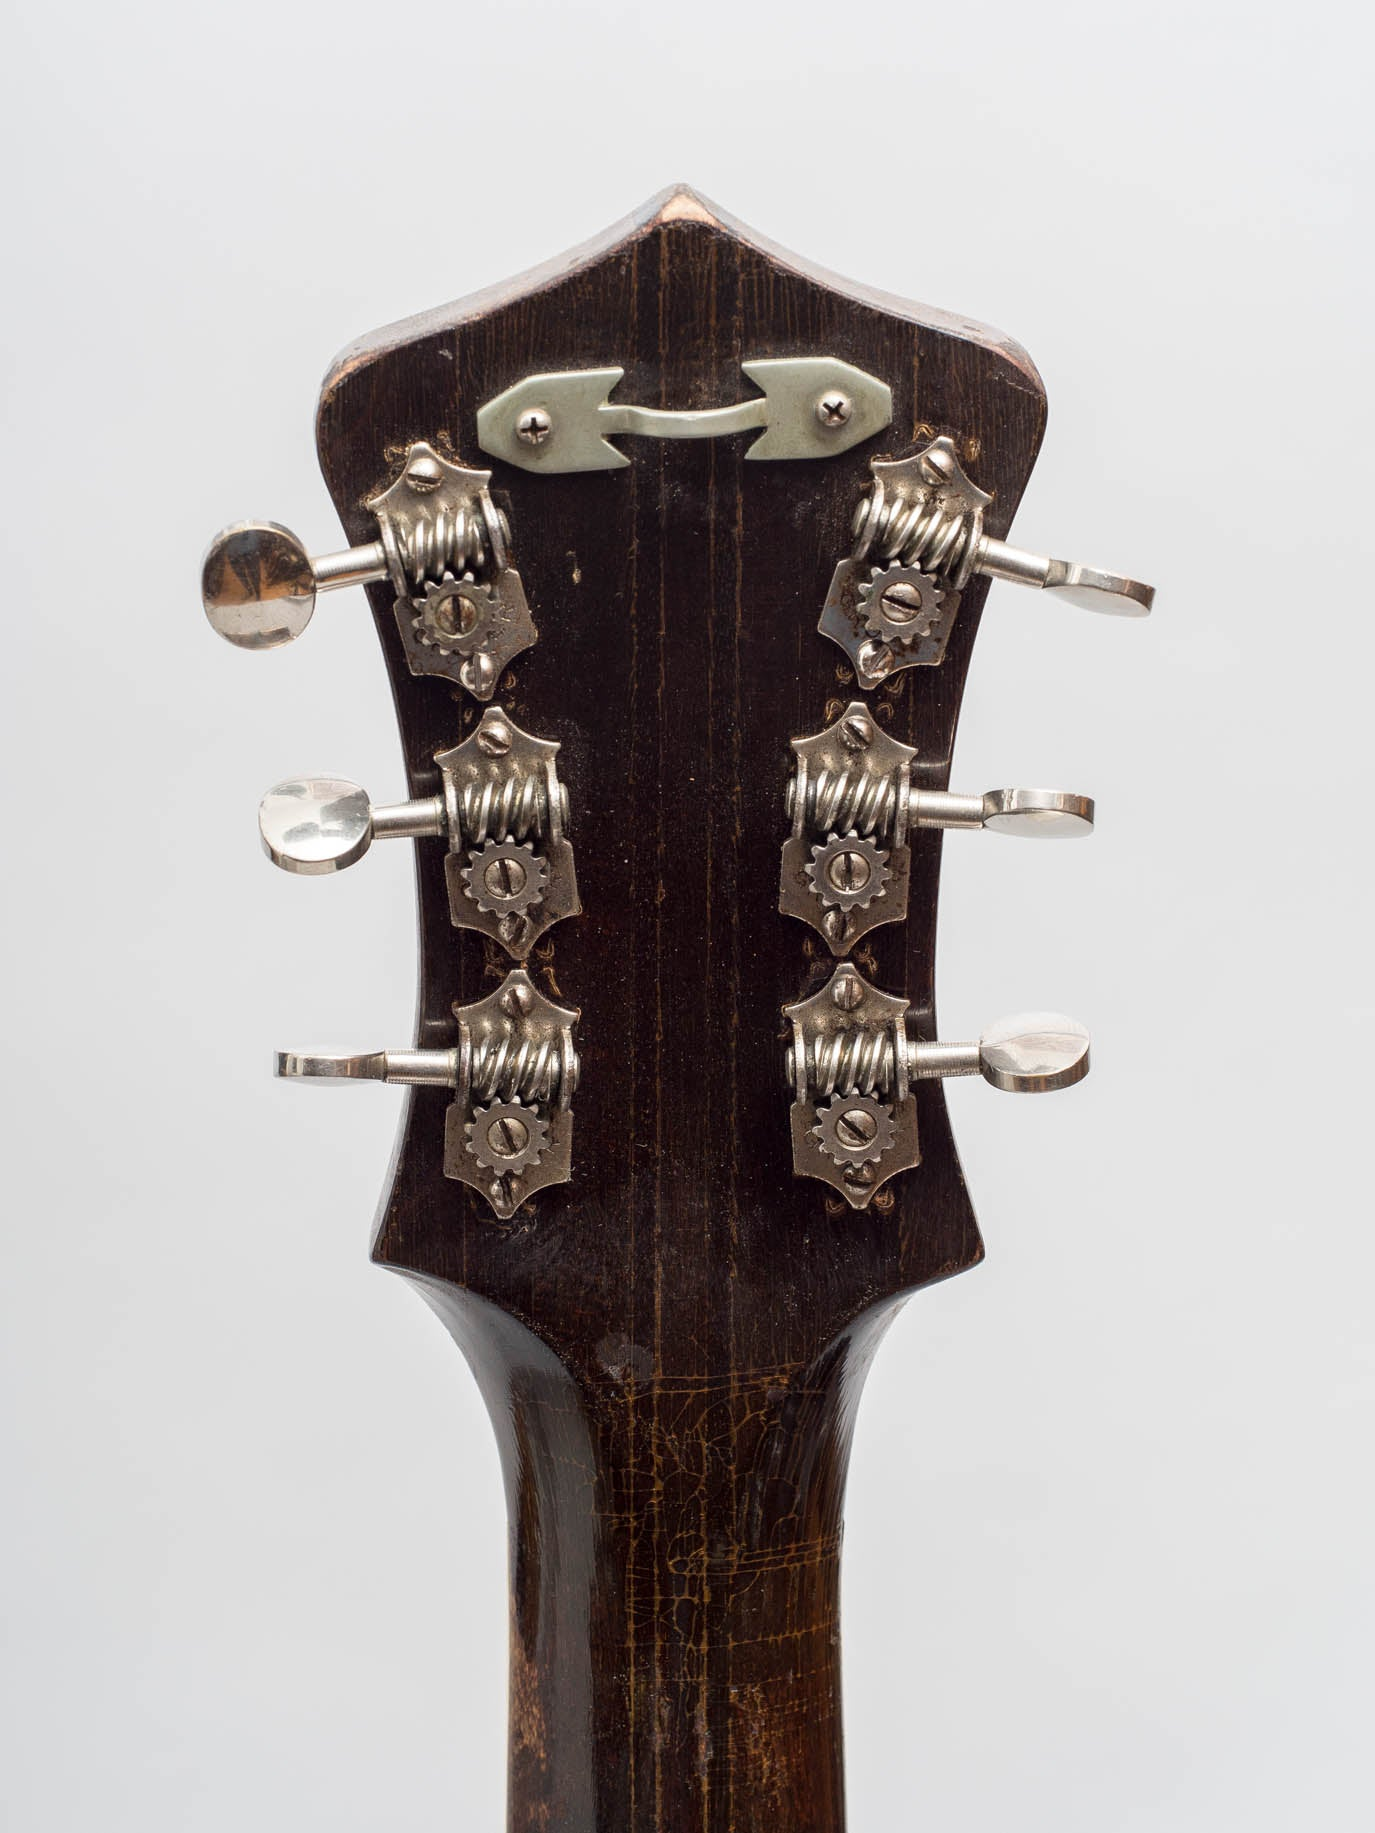 1939 Gibson Recording King Ray Whitley